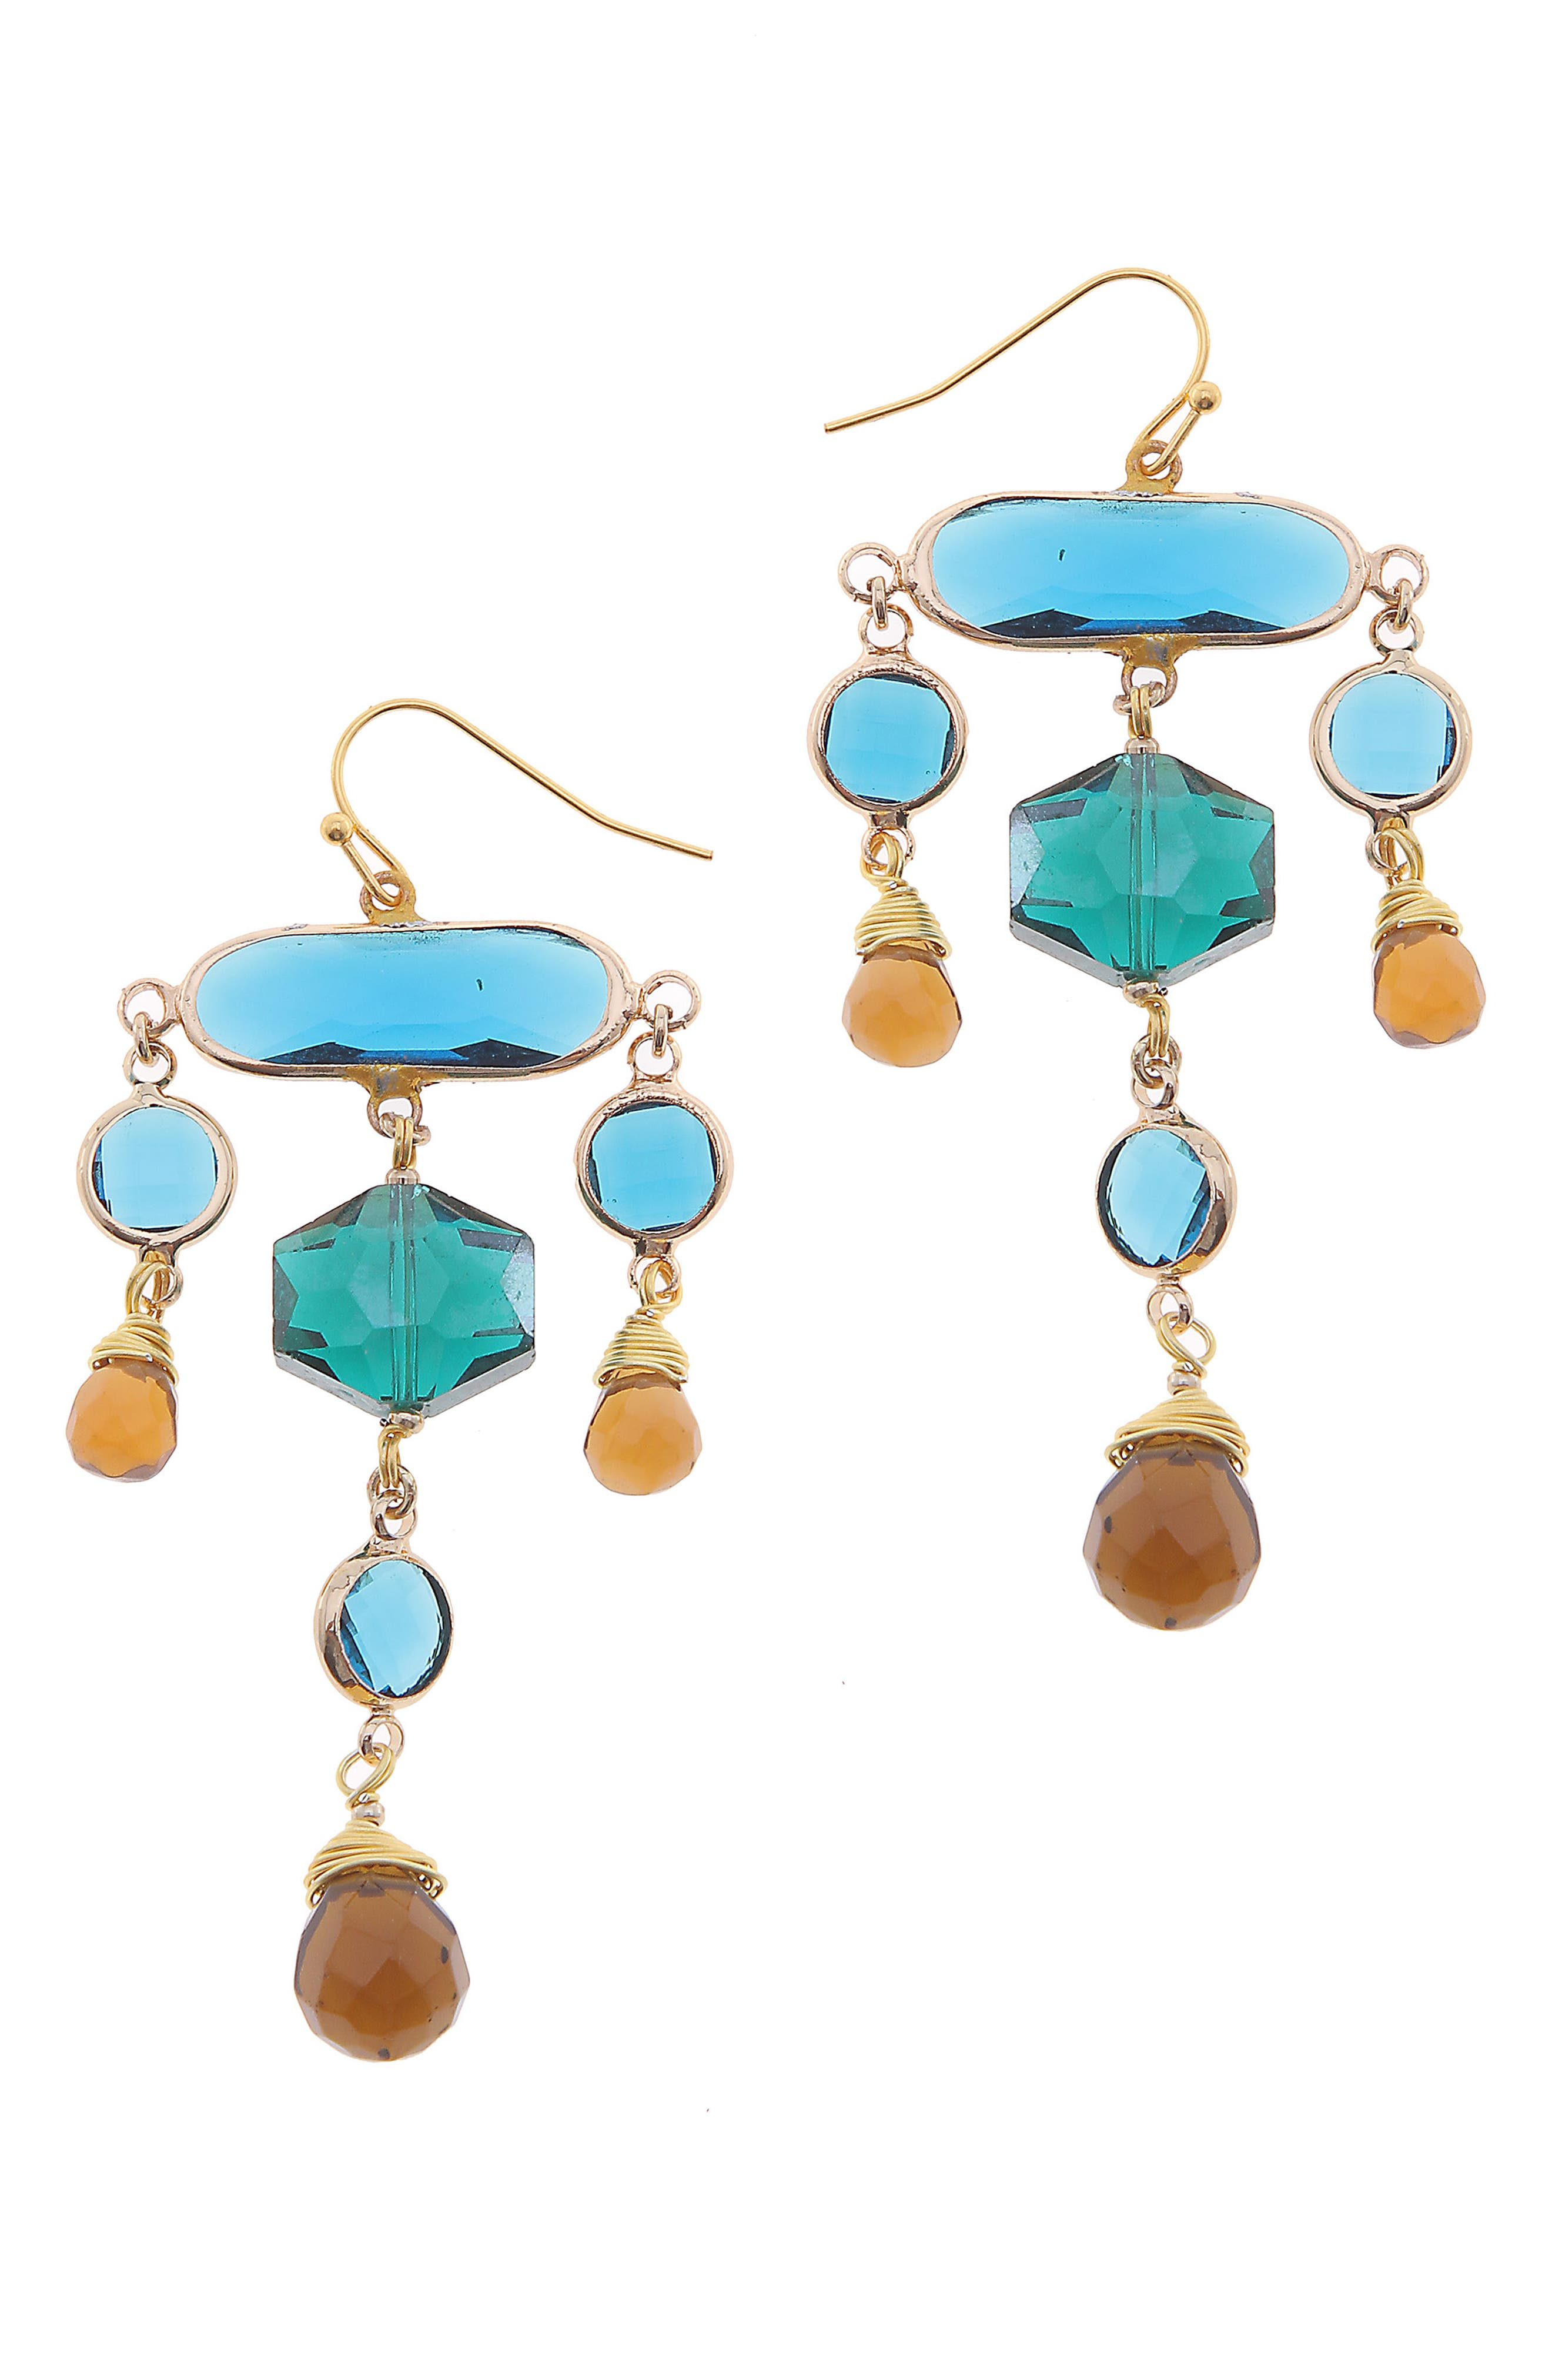 Crystal Statement Earrings,                             Main thumbnail 1, color,                             400